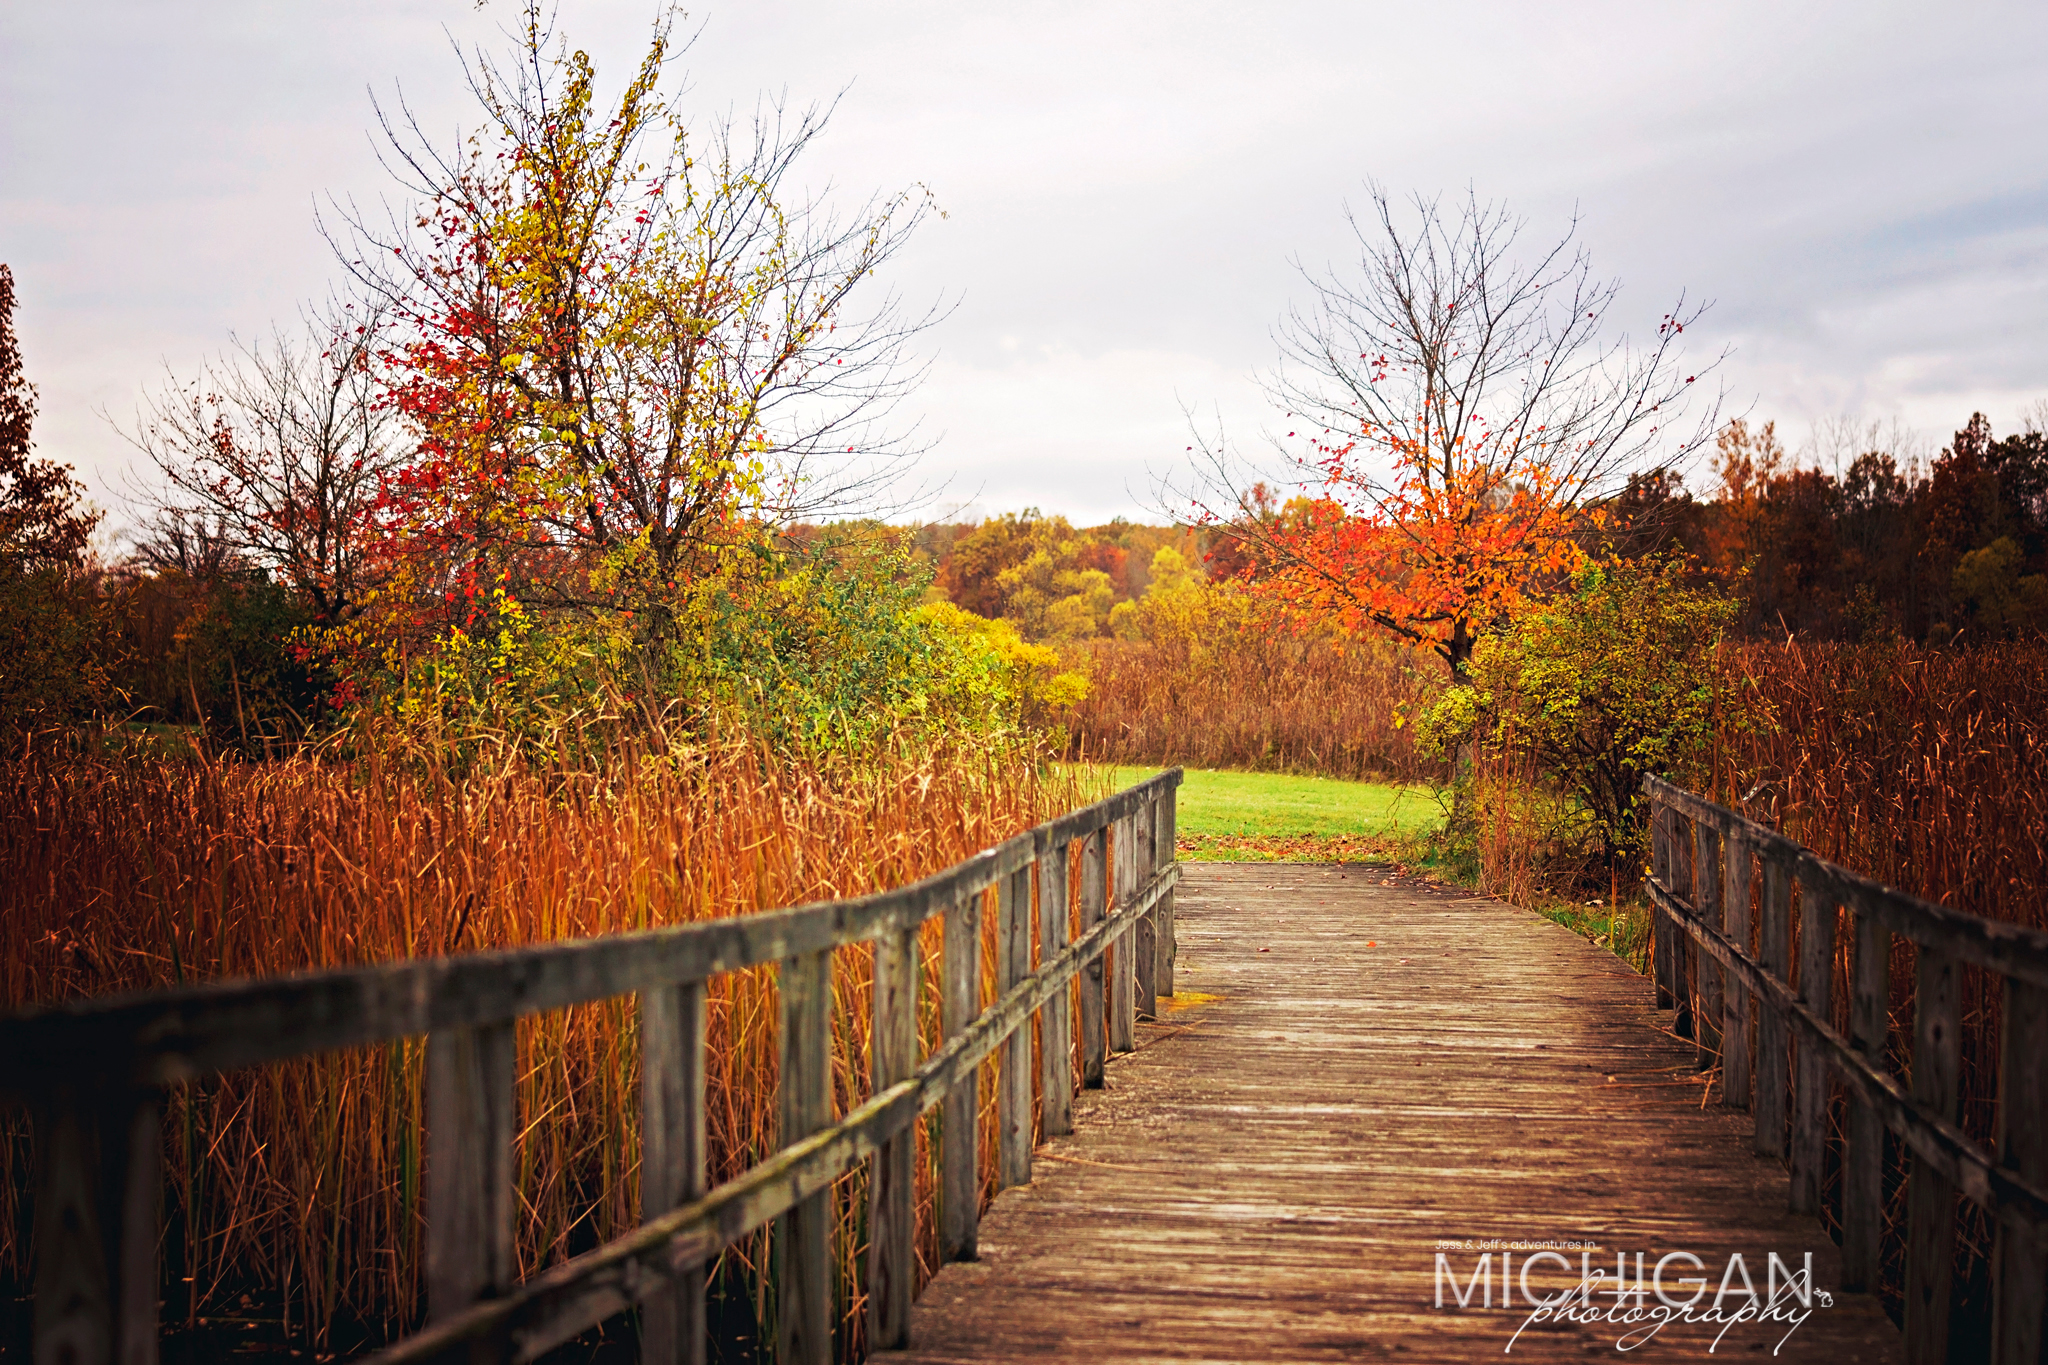 The end of the boardwalk. Crosswinds Marsh in Autumn